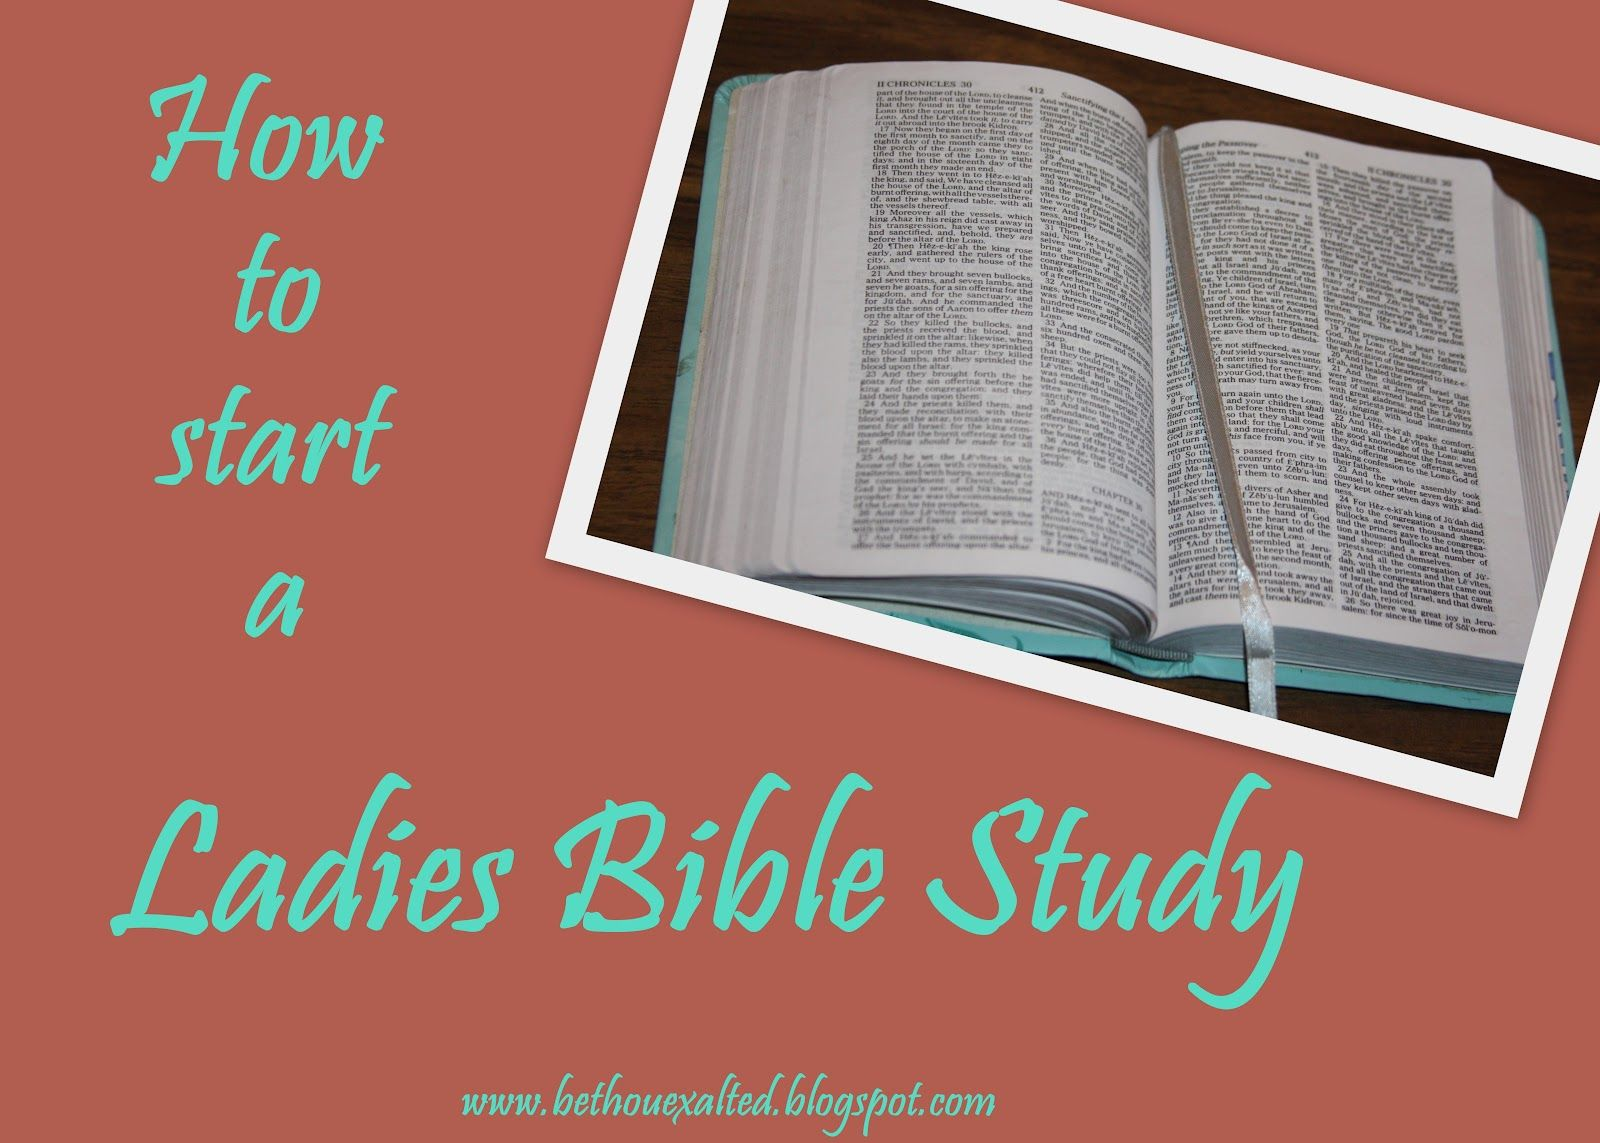 baptist missionary women: how to start a ladies bible study | bible